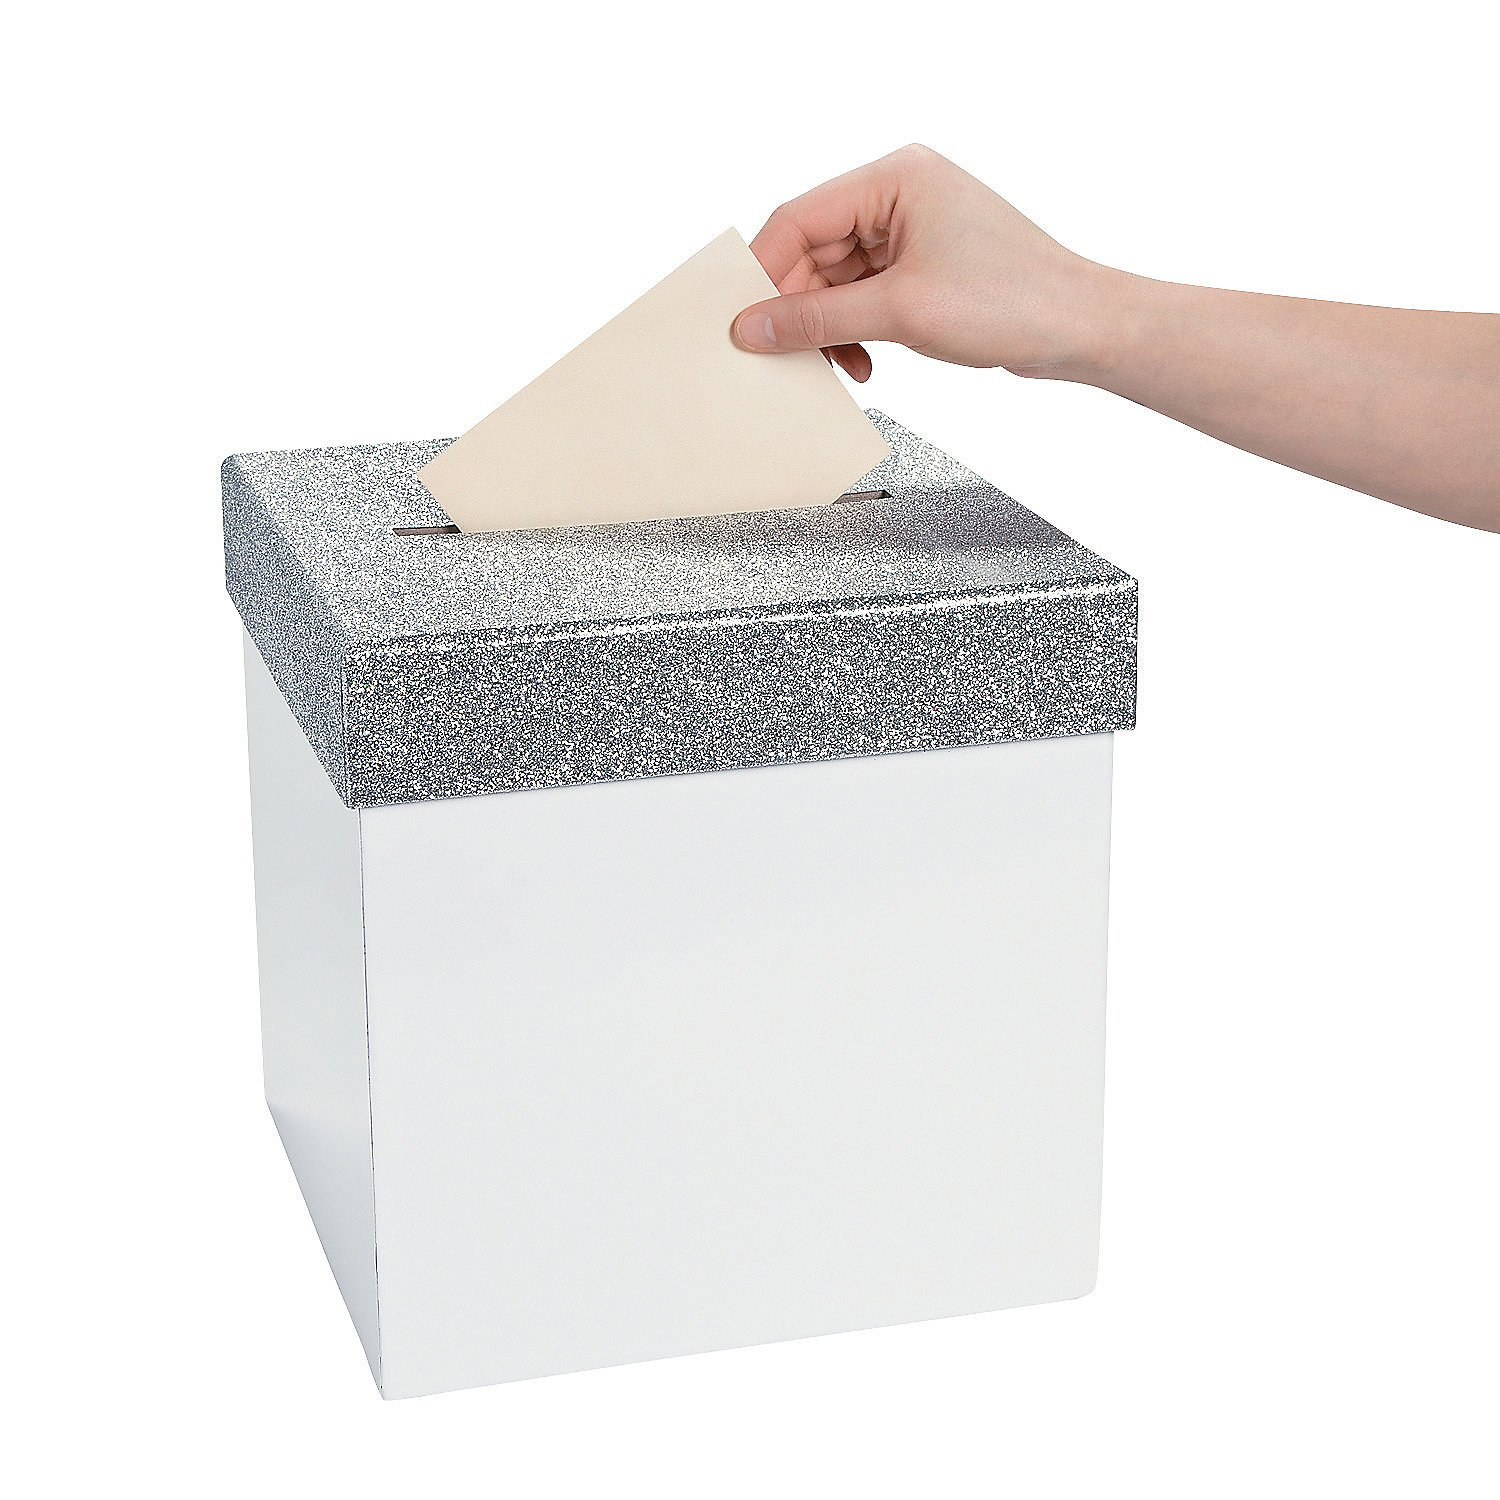 Fun Express - White Cardbox With Silver Glitter Top for Wedding - Party Supplies - Containers & Boxes - Paper Boxes - Wedding - 1 Piece